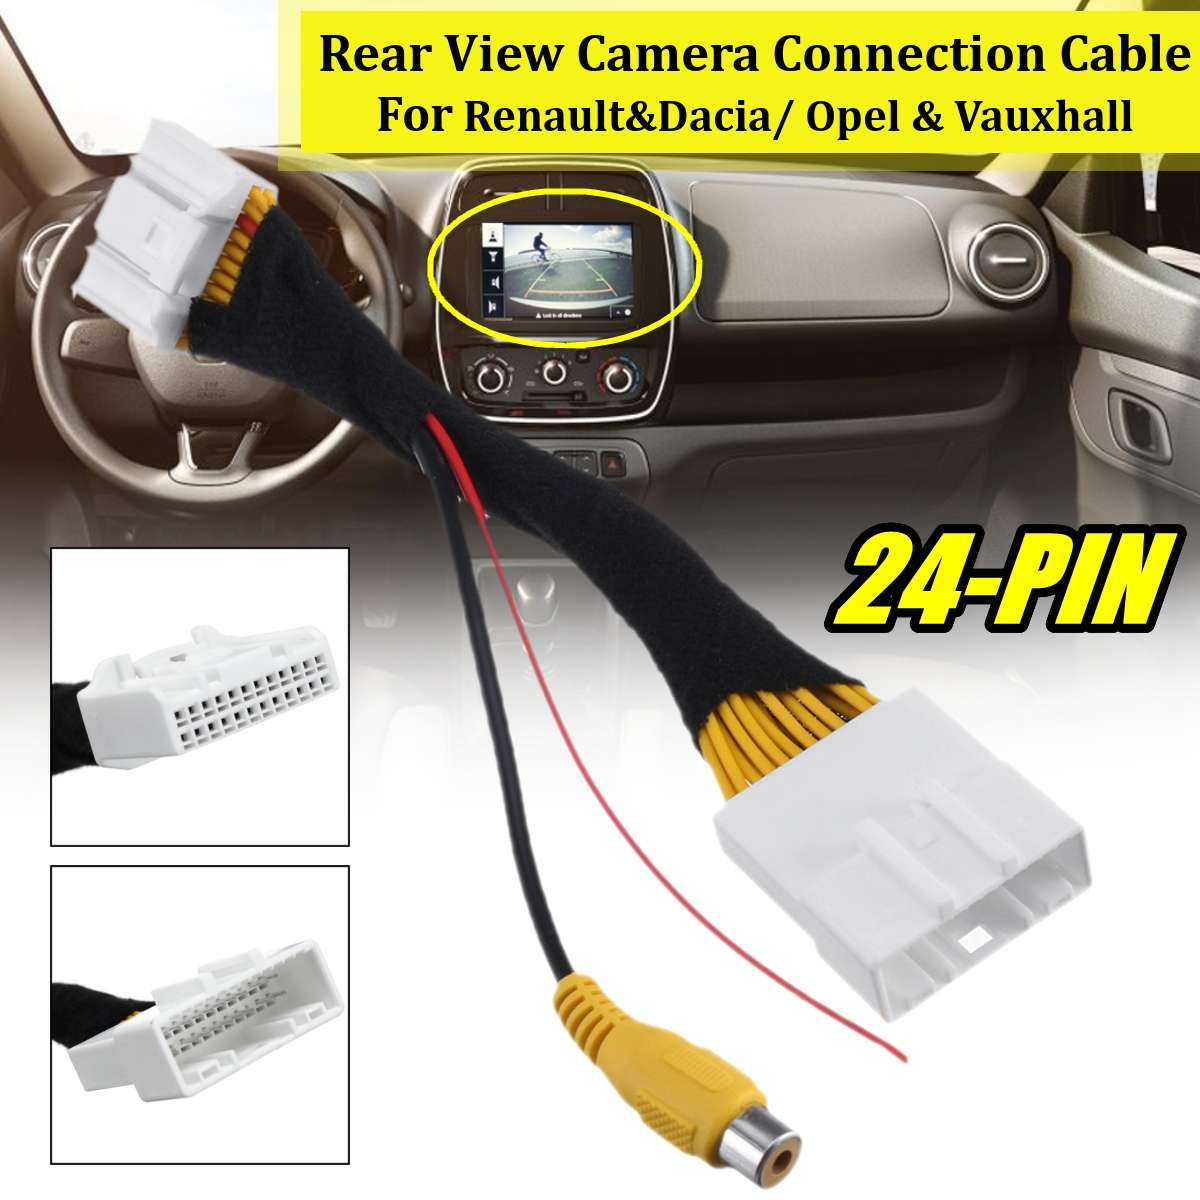 24 Pin Adapter Rear View Camera Connection Cable For Renault&Dacia For Opel For Vauxhall For Clio 4 2012-up For Dokker 2012-up